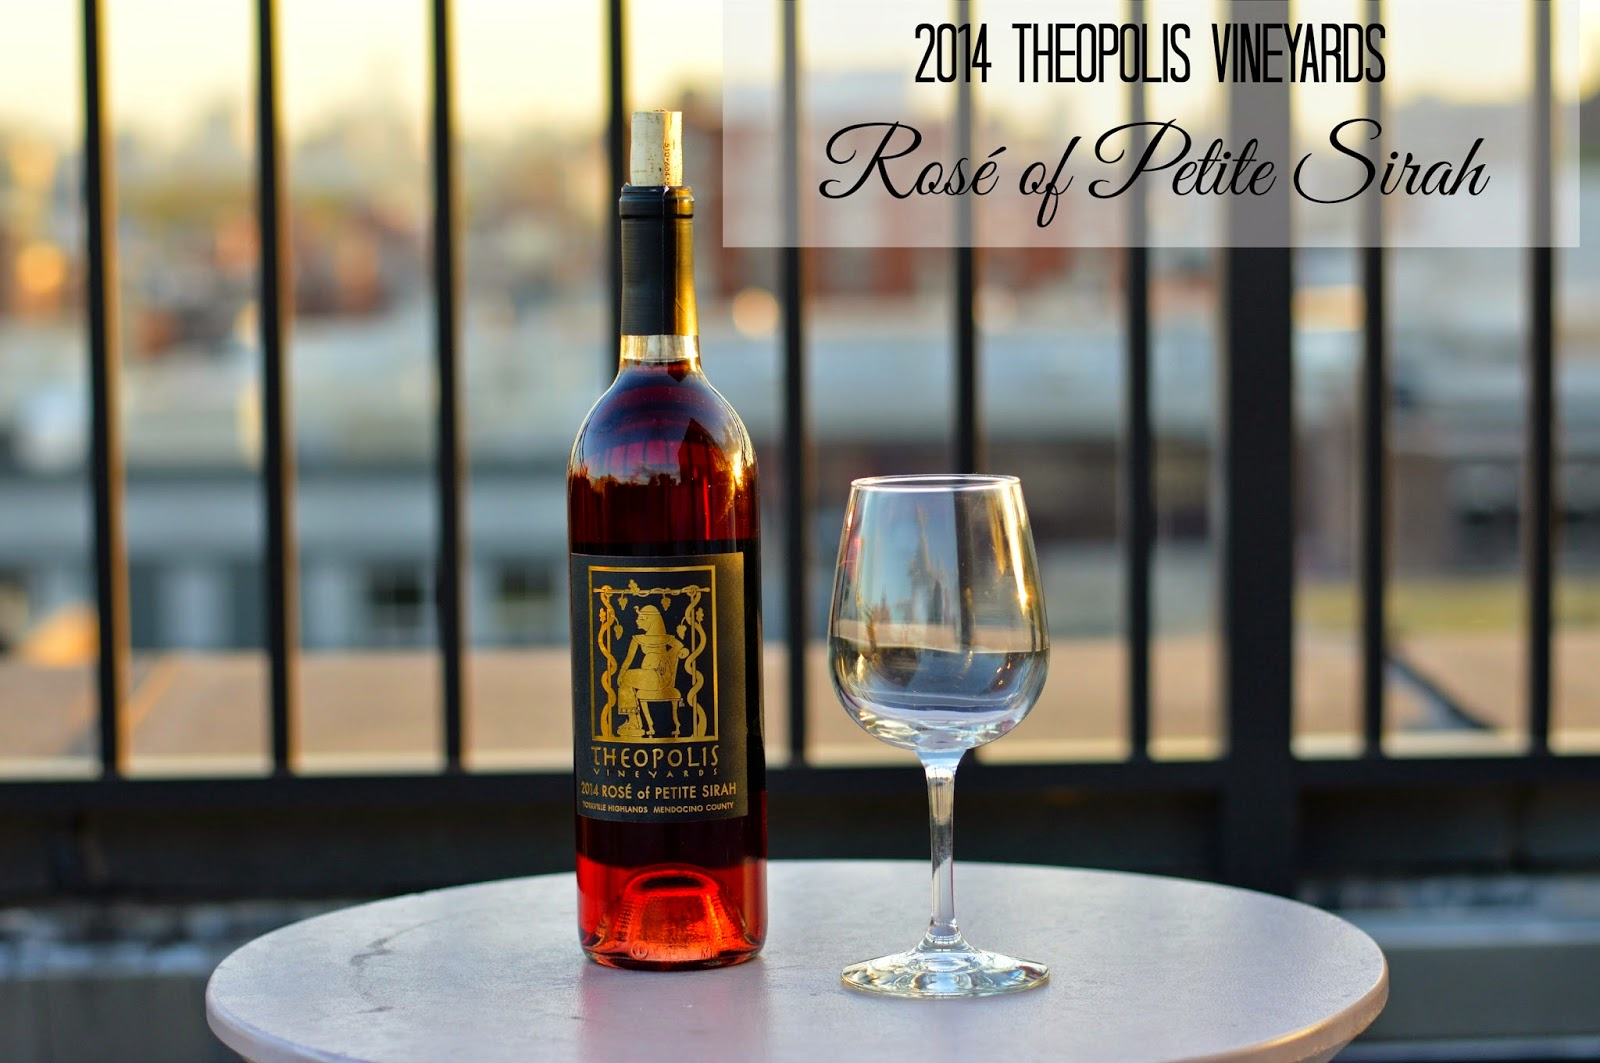 Natasha's Monthly Wine Pick: 2014 Theopolis Vineyards Rosé of Petite Sirah